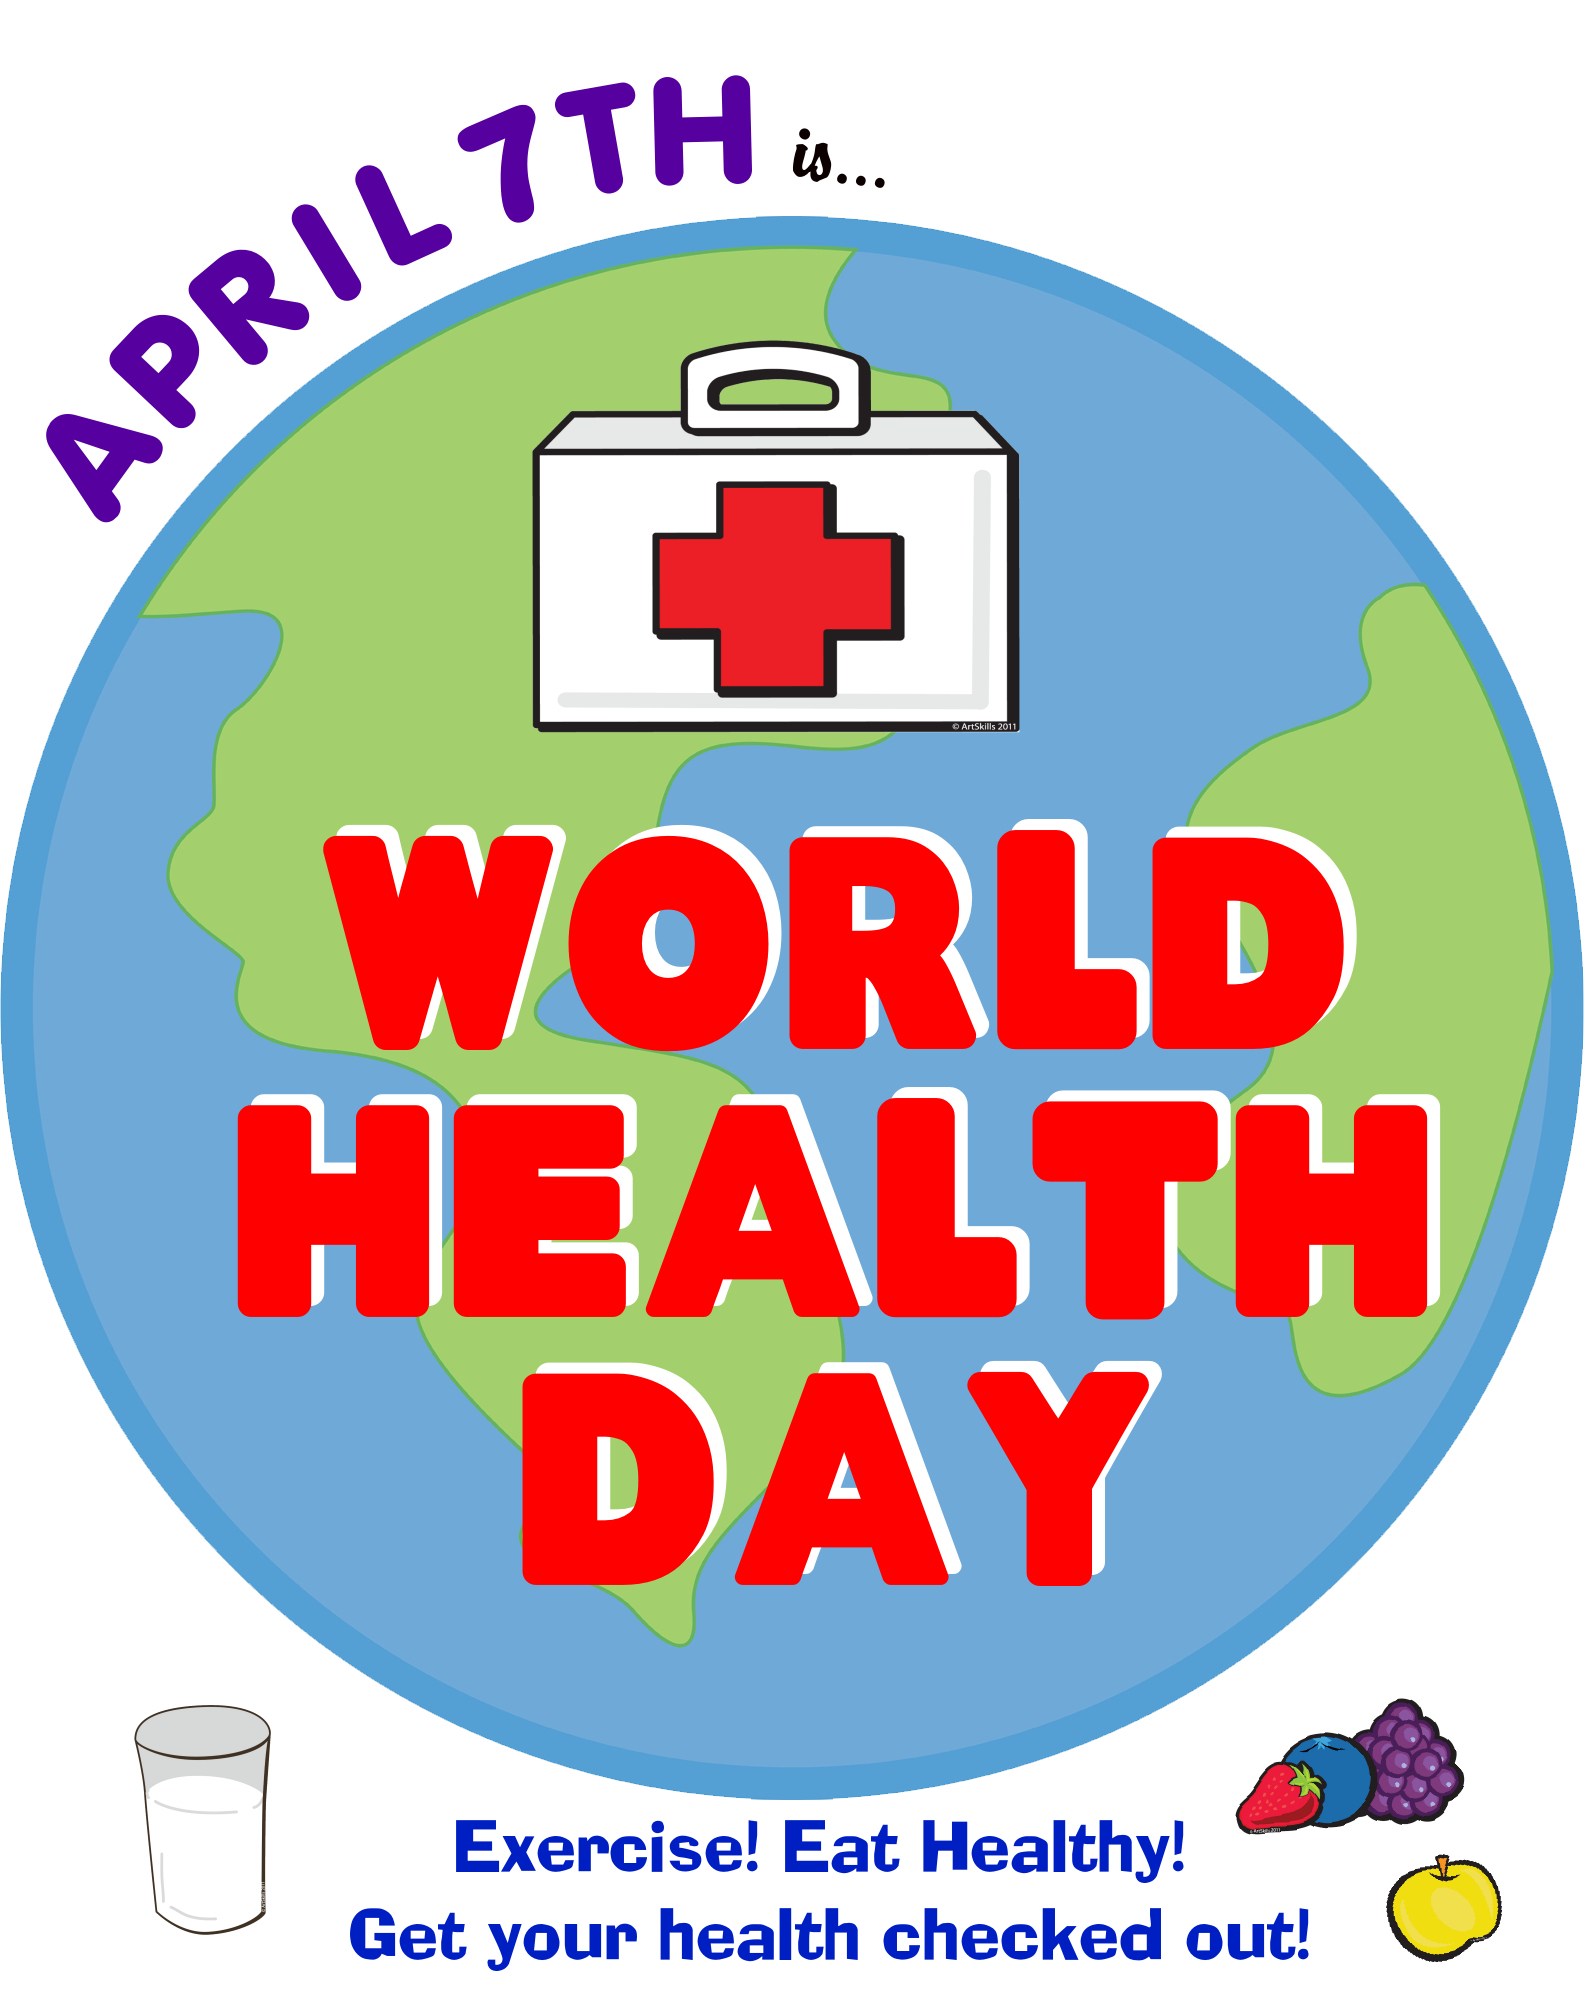 ... Health Day | Fun World Health Day Science Poster Ideas for Your Kids